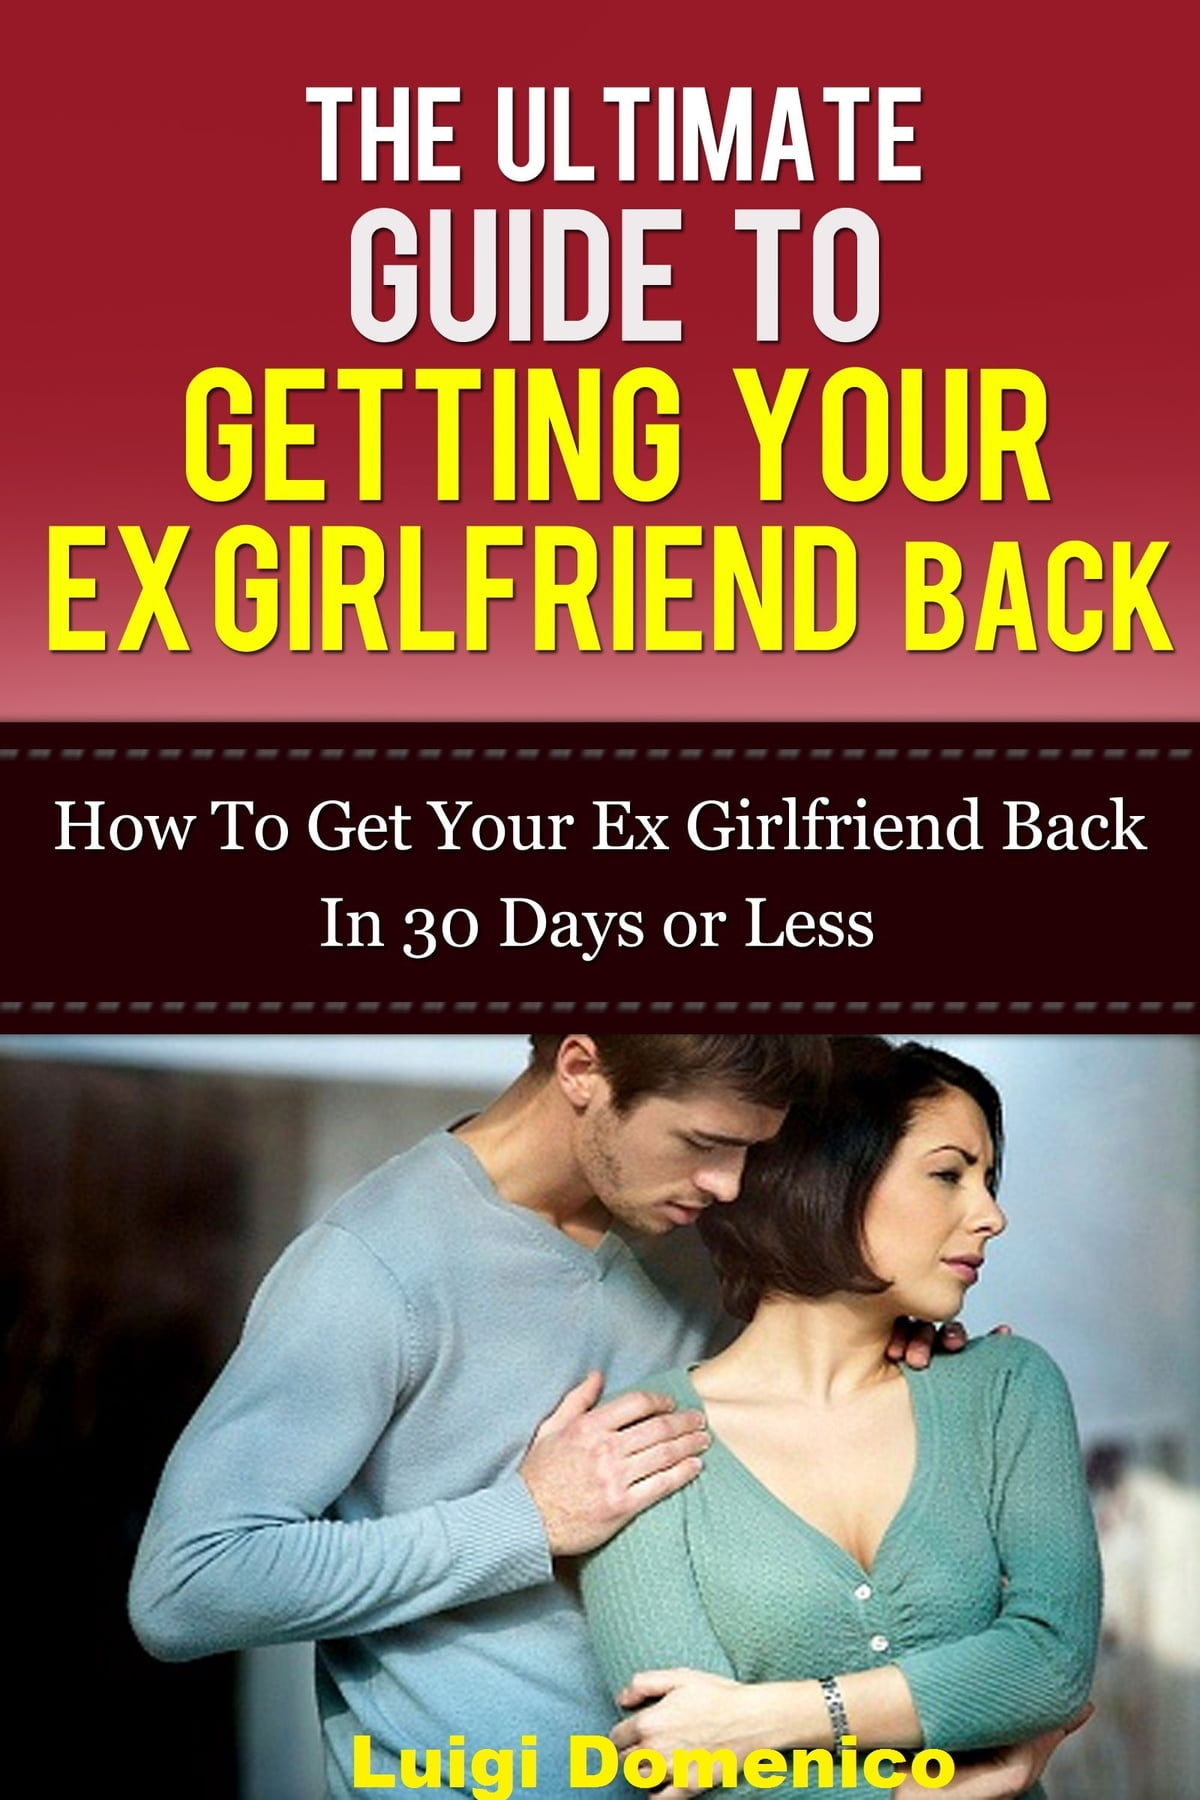 Watch the video: The 3 Most Important Factors to Get Your Ex Back